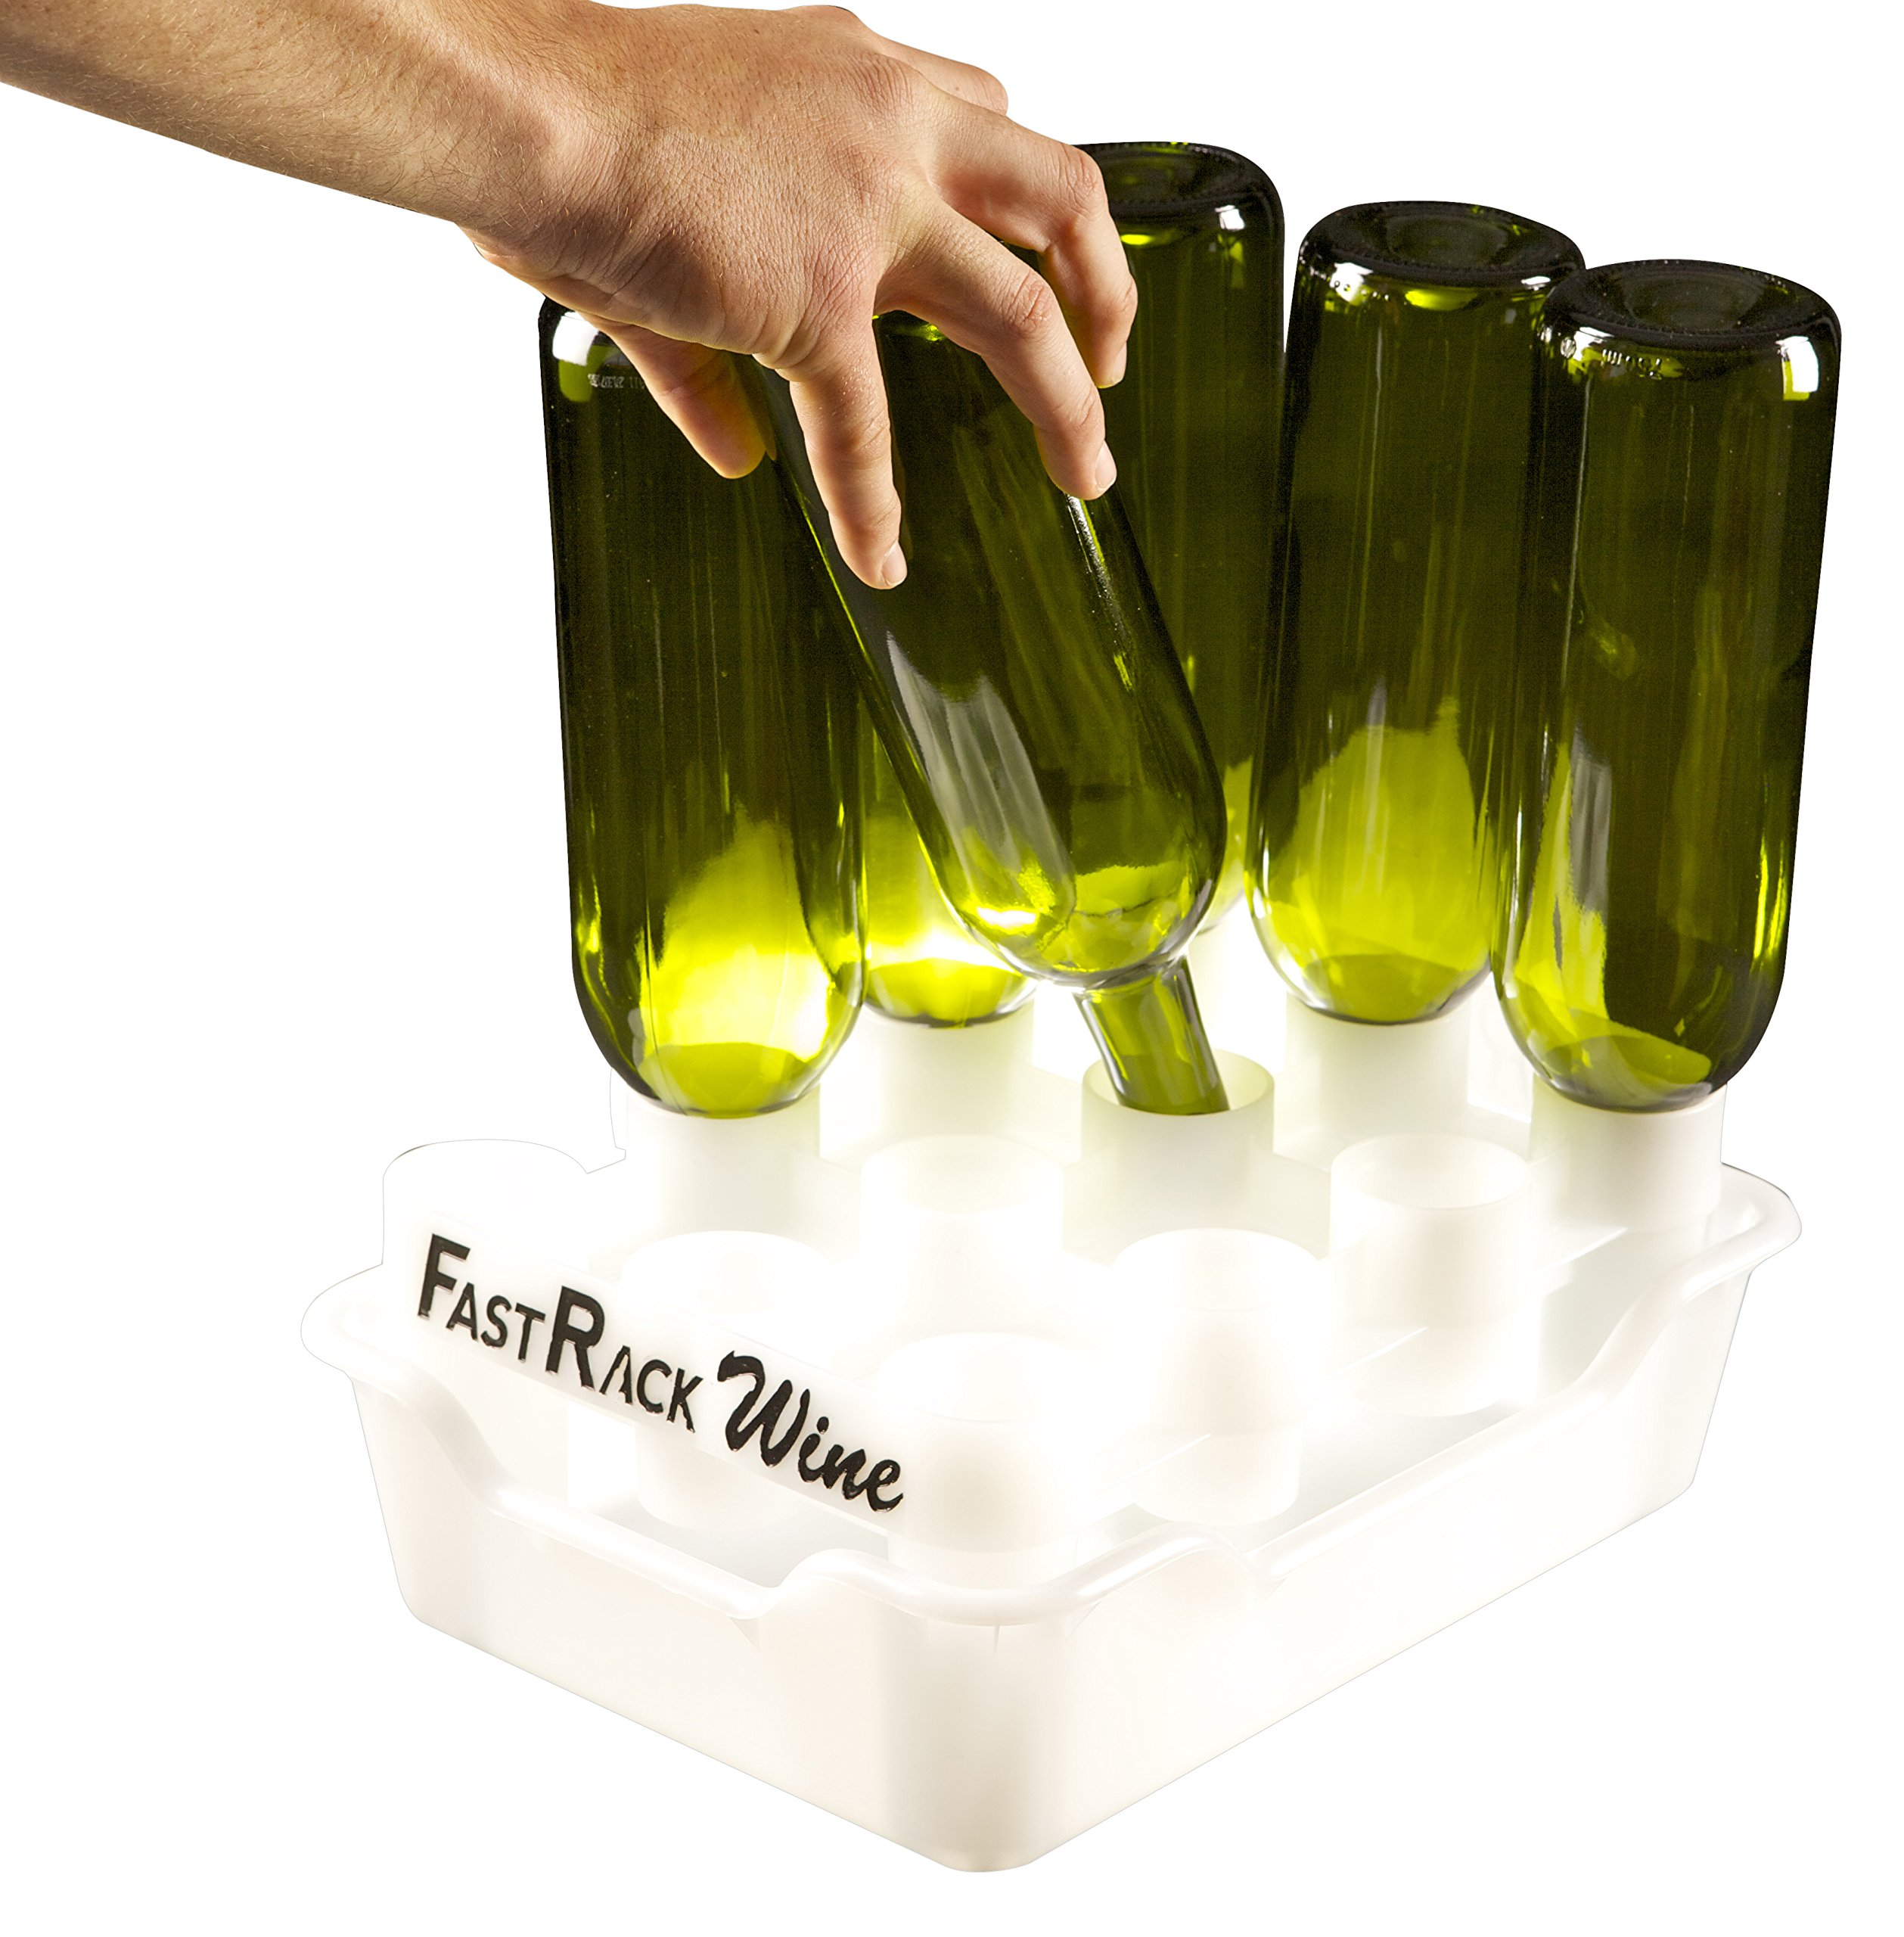 FastRack Bottle Drying Rack - Bottle Drying Tree alternative; Dry & Store your Wine or Bomber/Belgian Bottles; Perfect addition to your Wine Fermentation Kit (FastRack12 One Rack & One Tray) by Fastrack (Image #1)